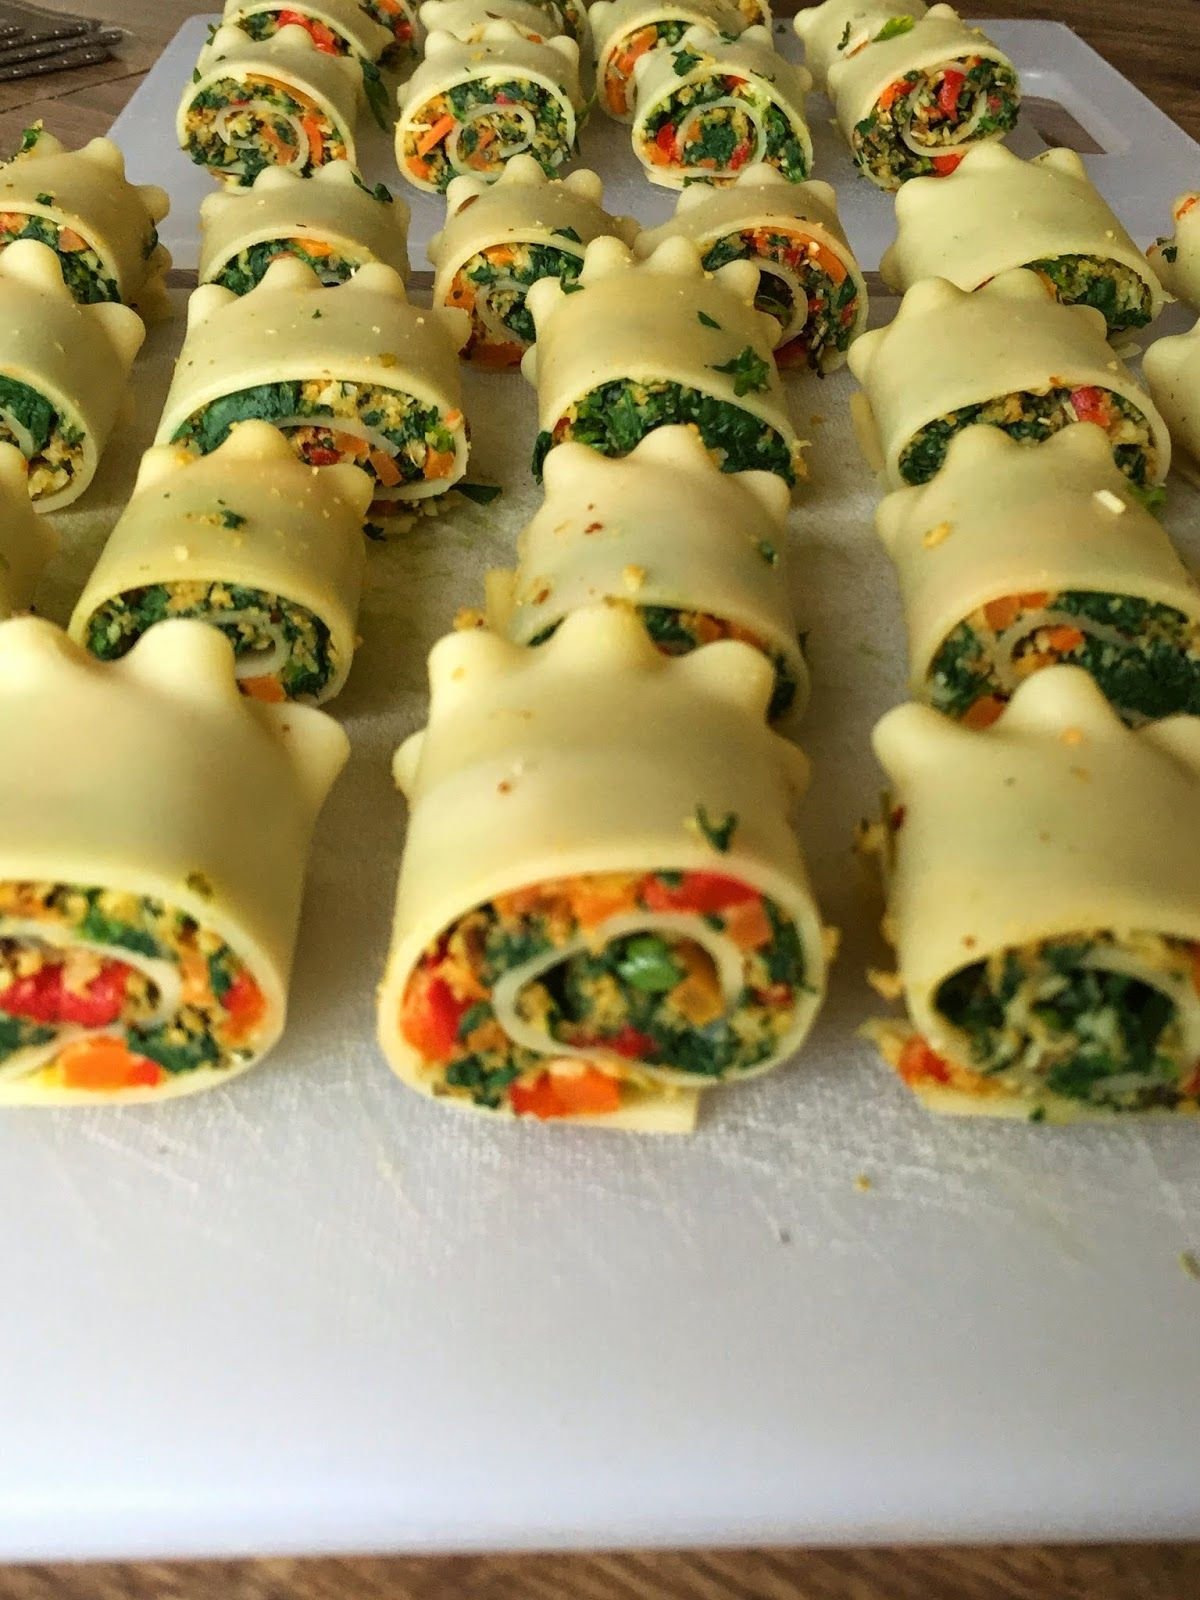 Jain tadka mini spinach corn roll ups lasagna vegetarian delicacy jain tadka mini spinach corn roll ups lasagna forumfinder Images